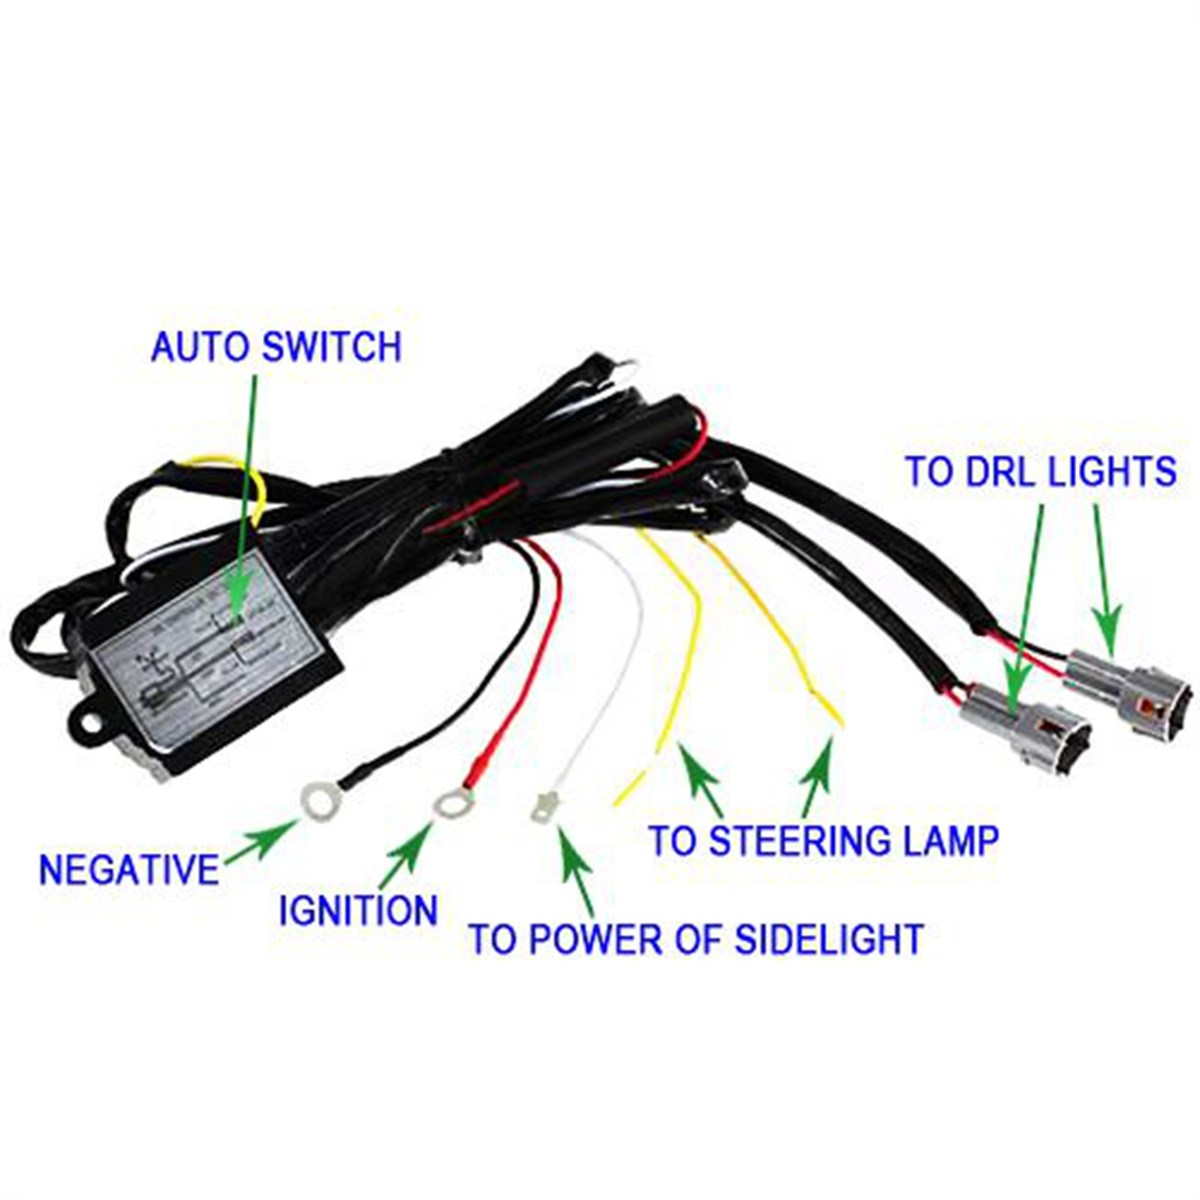 DRL LED Daytime Running Light Relay Harness Automatic On Off Control Switch  12V Warning lights-in Car Switches & Relays from Automobiles & Motorcycles  on ...